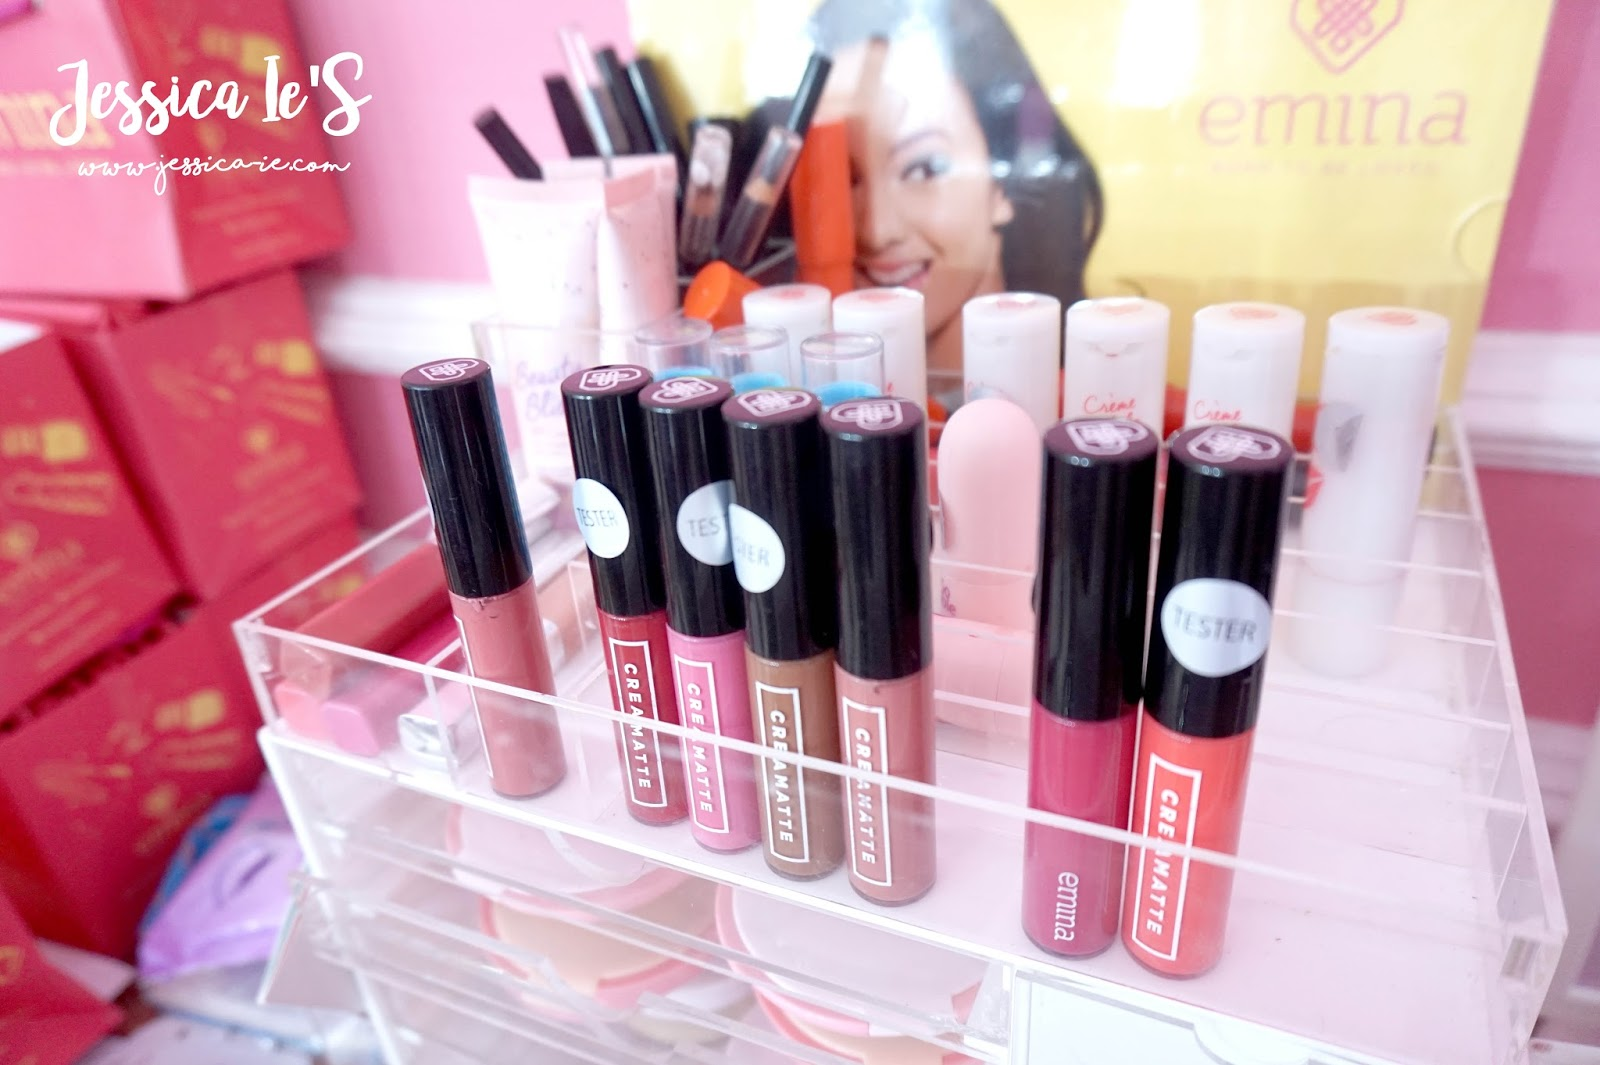 Jessica Ies Lifestyle Journal Event Report Blobar Instant Beauty Emina Matte Lipcream This Is The Swatch Of Creammate Lip Cream